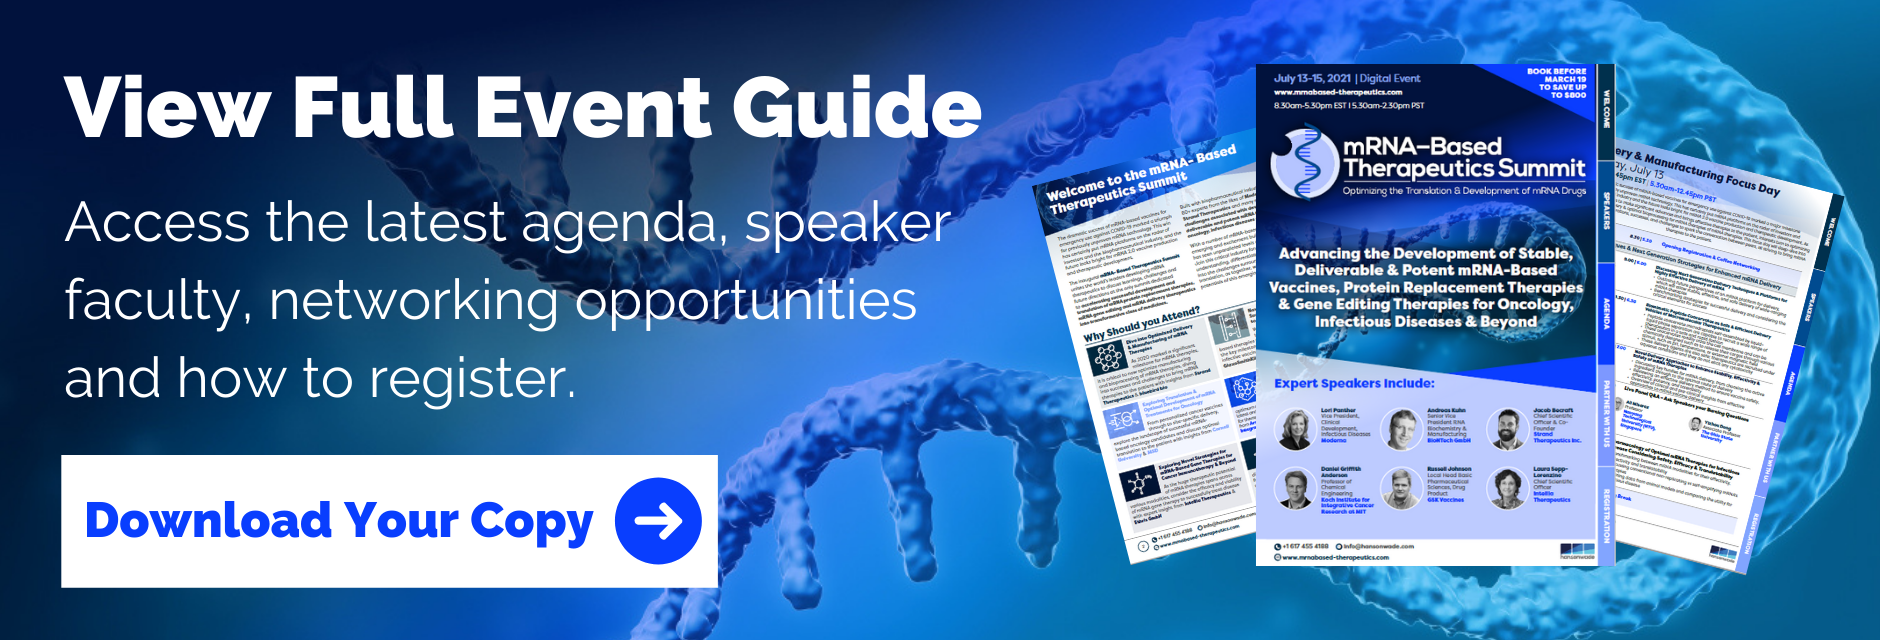 mRNA Event Guide Banner